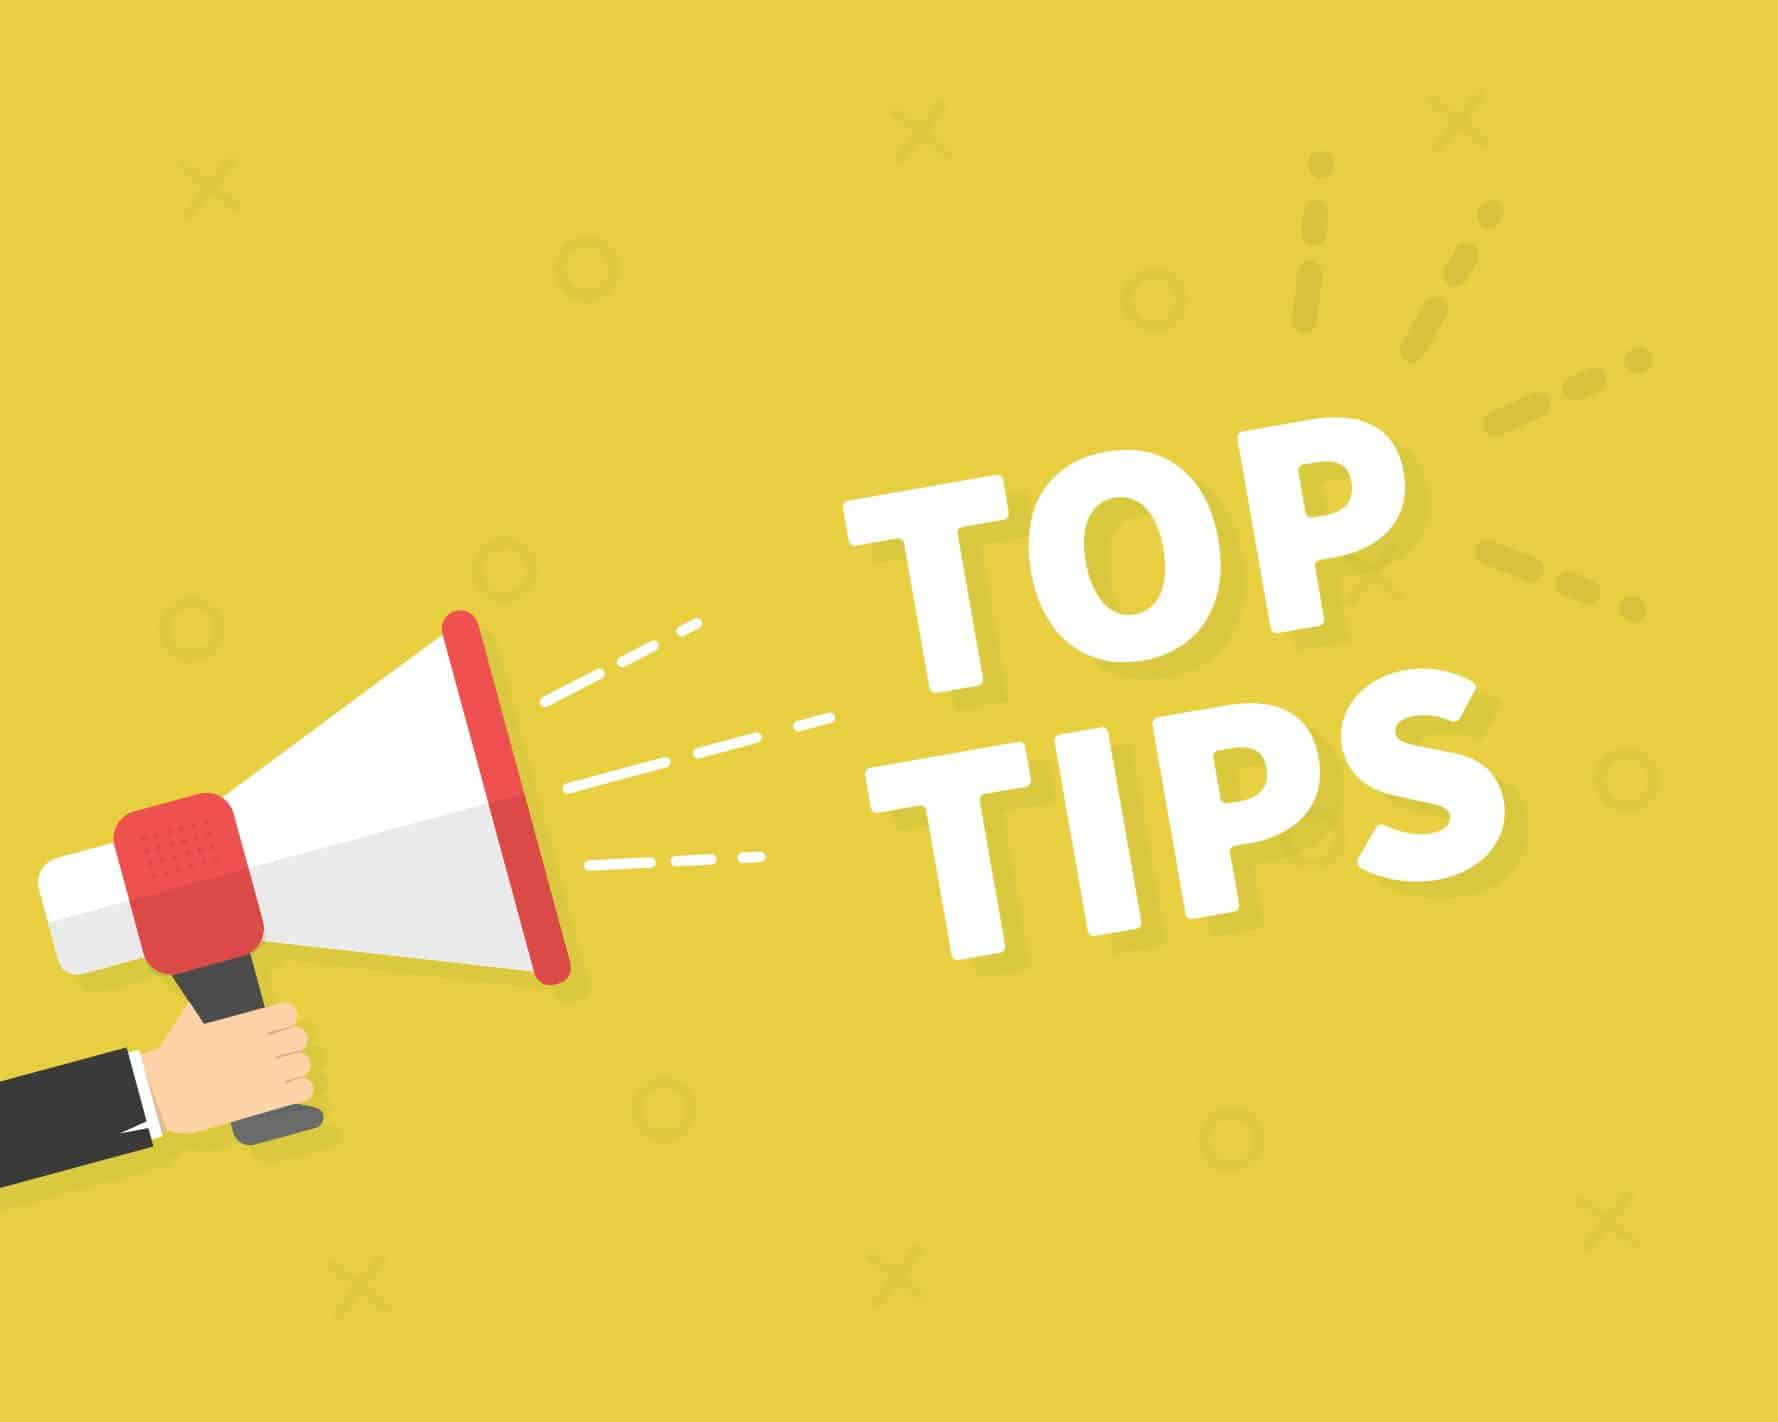 Three top tips to be safe online